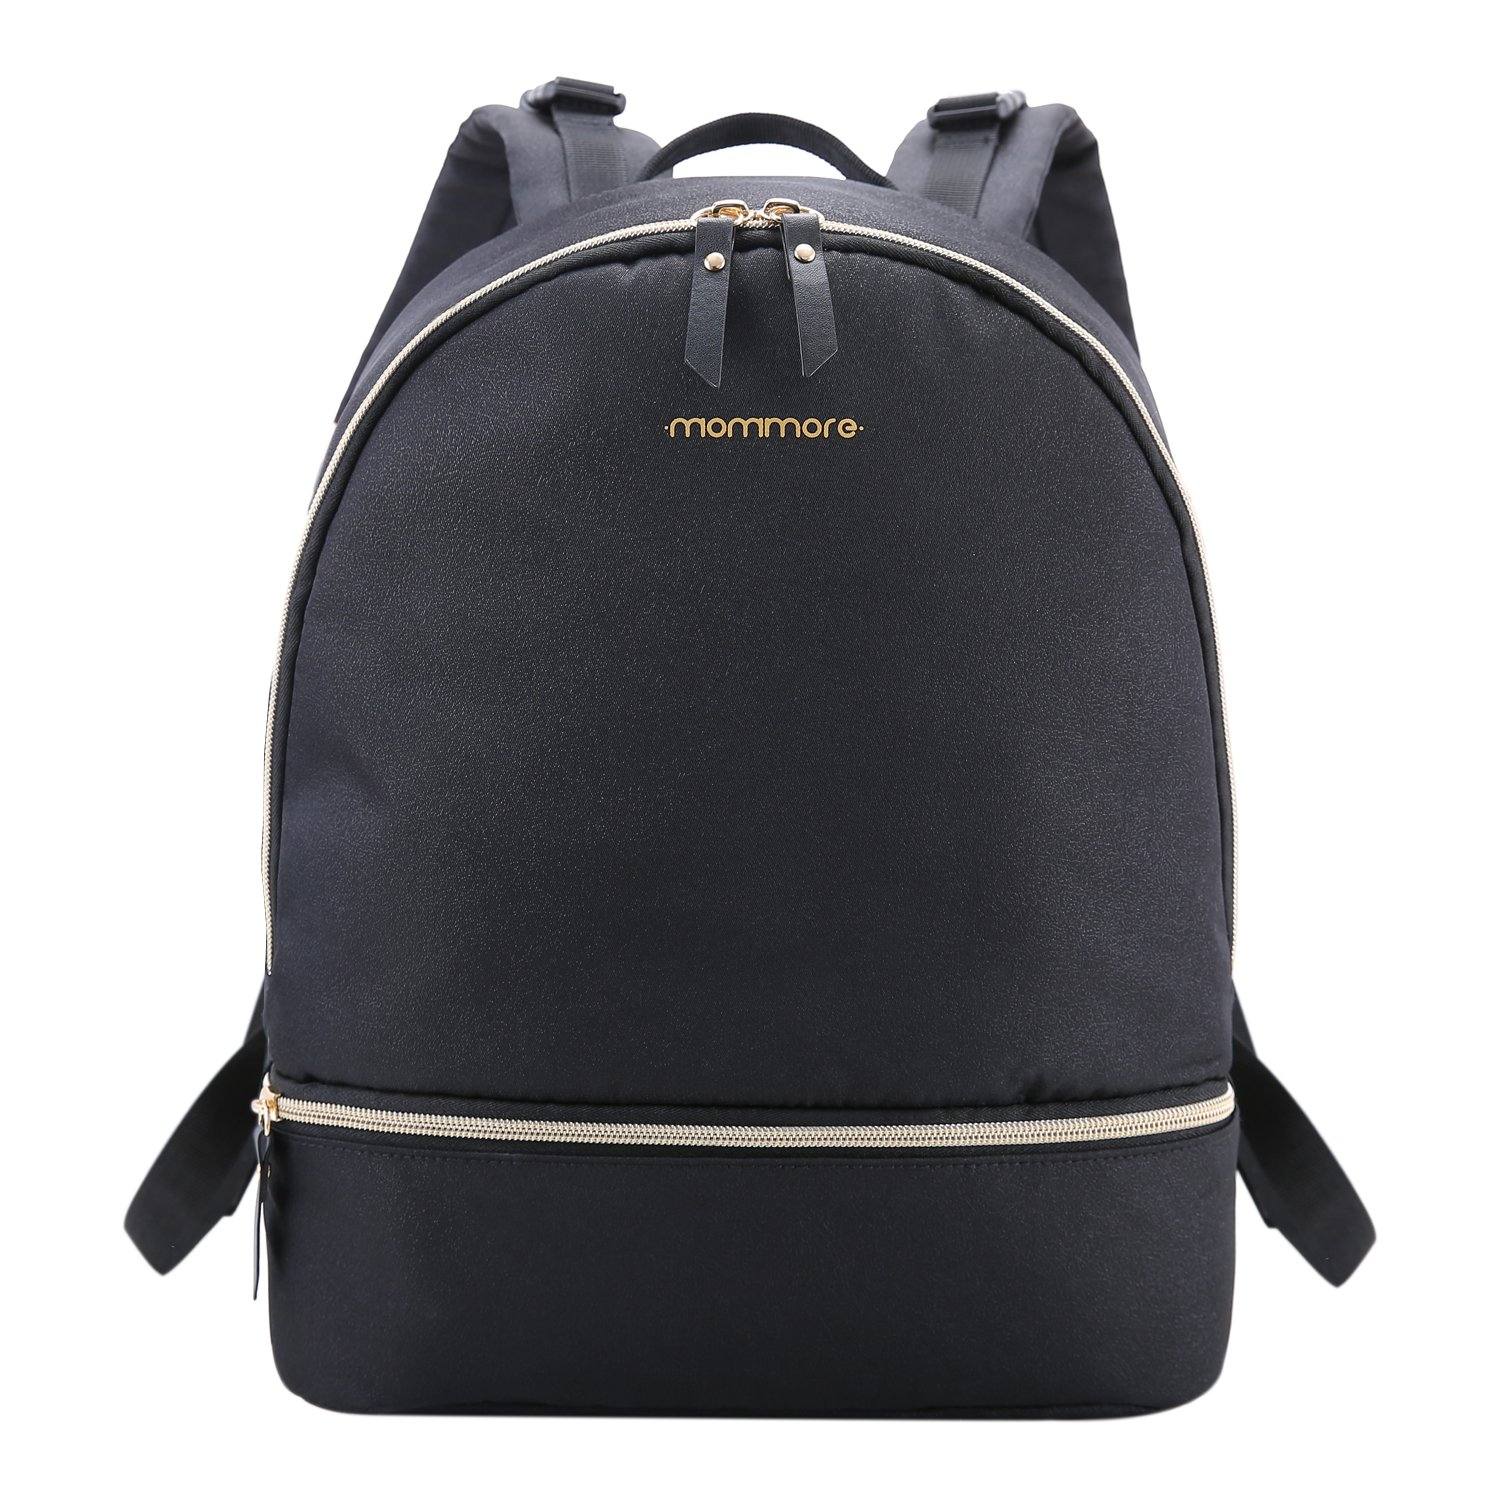 c5fff3b36d37e Amazon.com : mommore Diaper Backpack Fashion Diaper Bag with Changing Pad  for Baby Care, Black : Baby